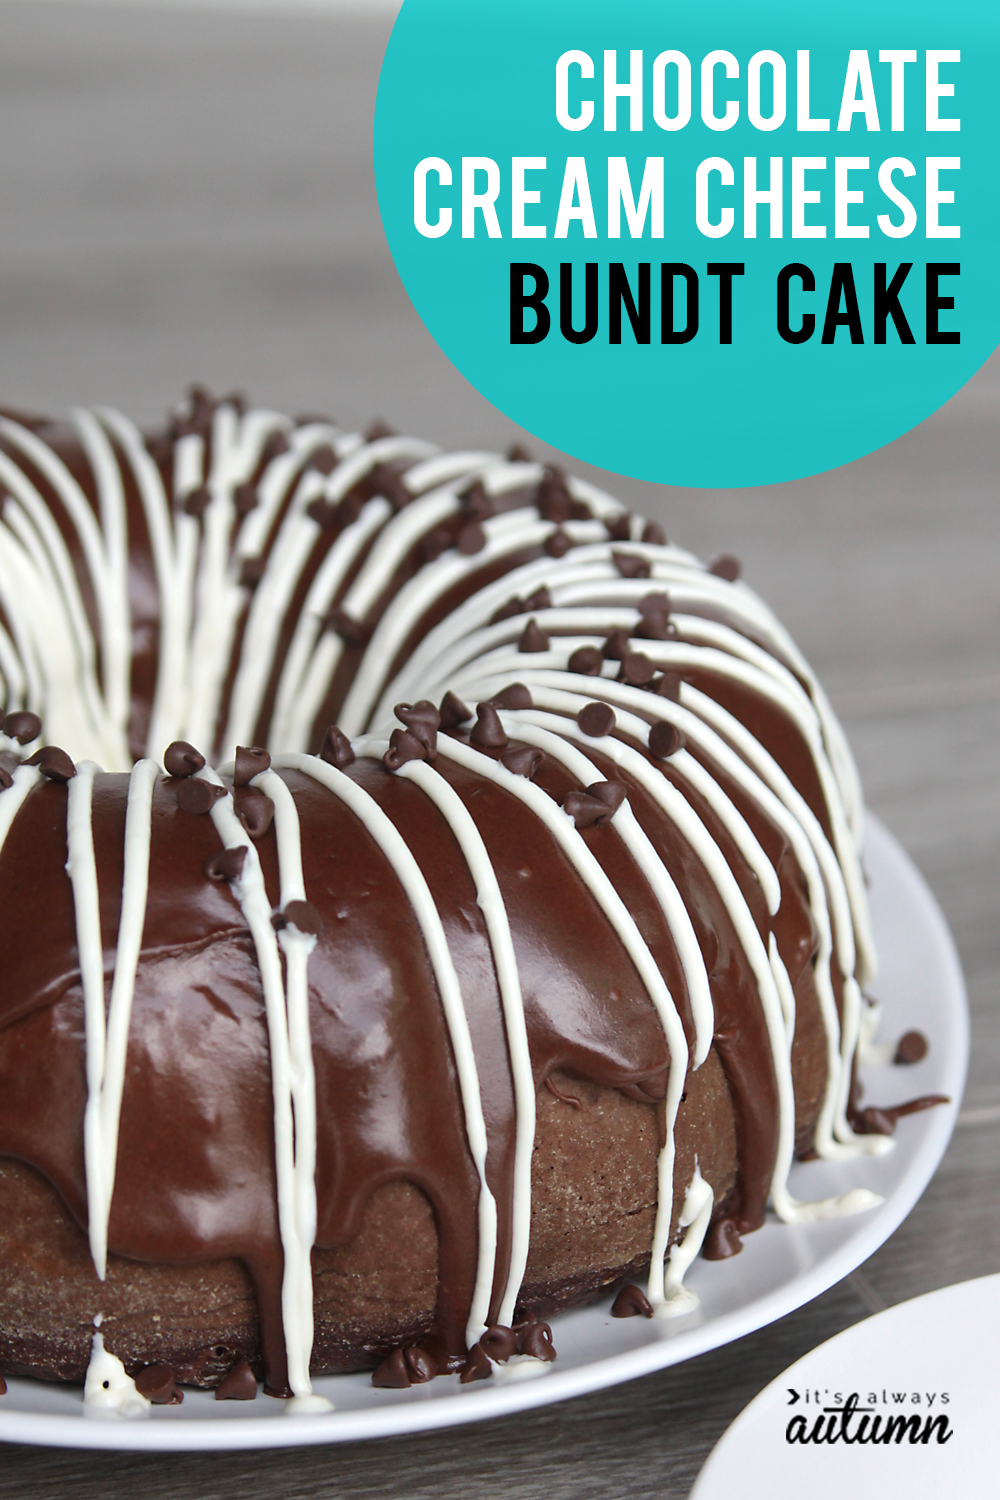 Chocolate cream cheese bundt cake! This is an amazing easy cake recipe.